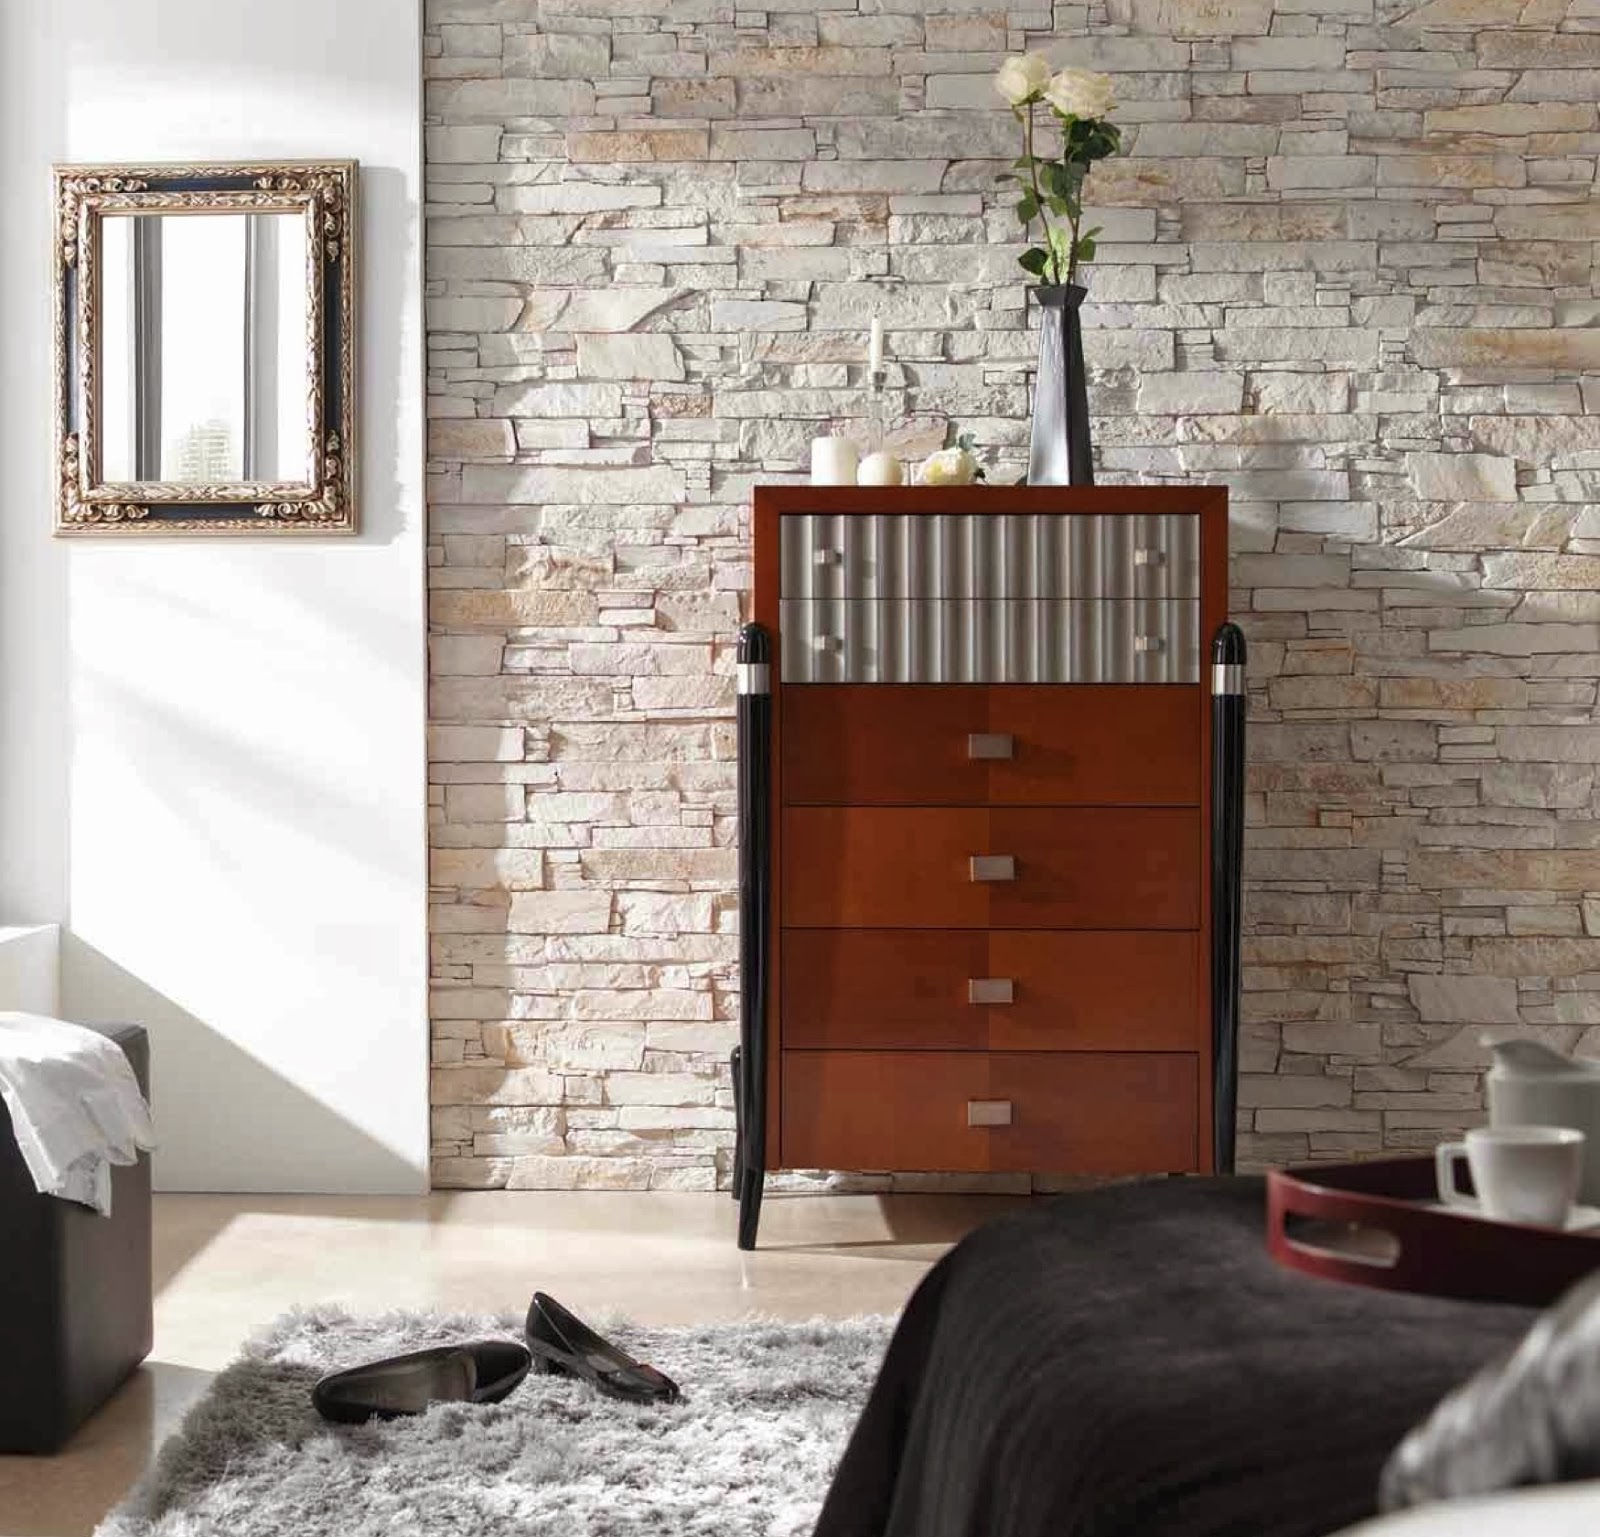 Exceptional Brick, Slate Effect, Faux Stones, Wall Coverings, Wall Panels, Contemporary  Interior